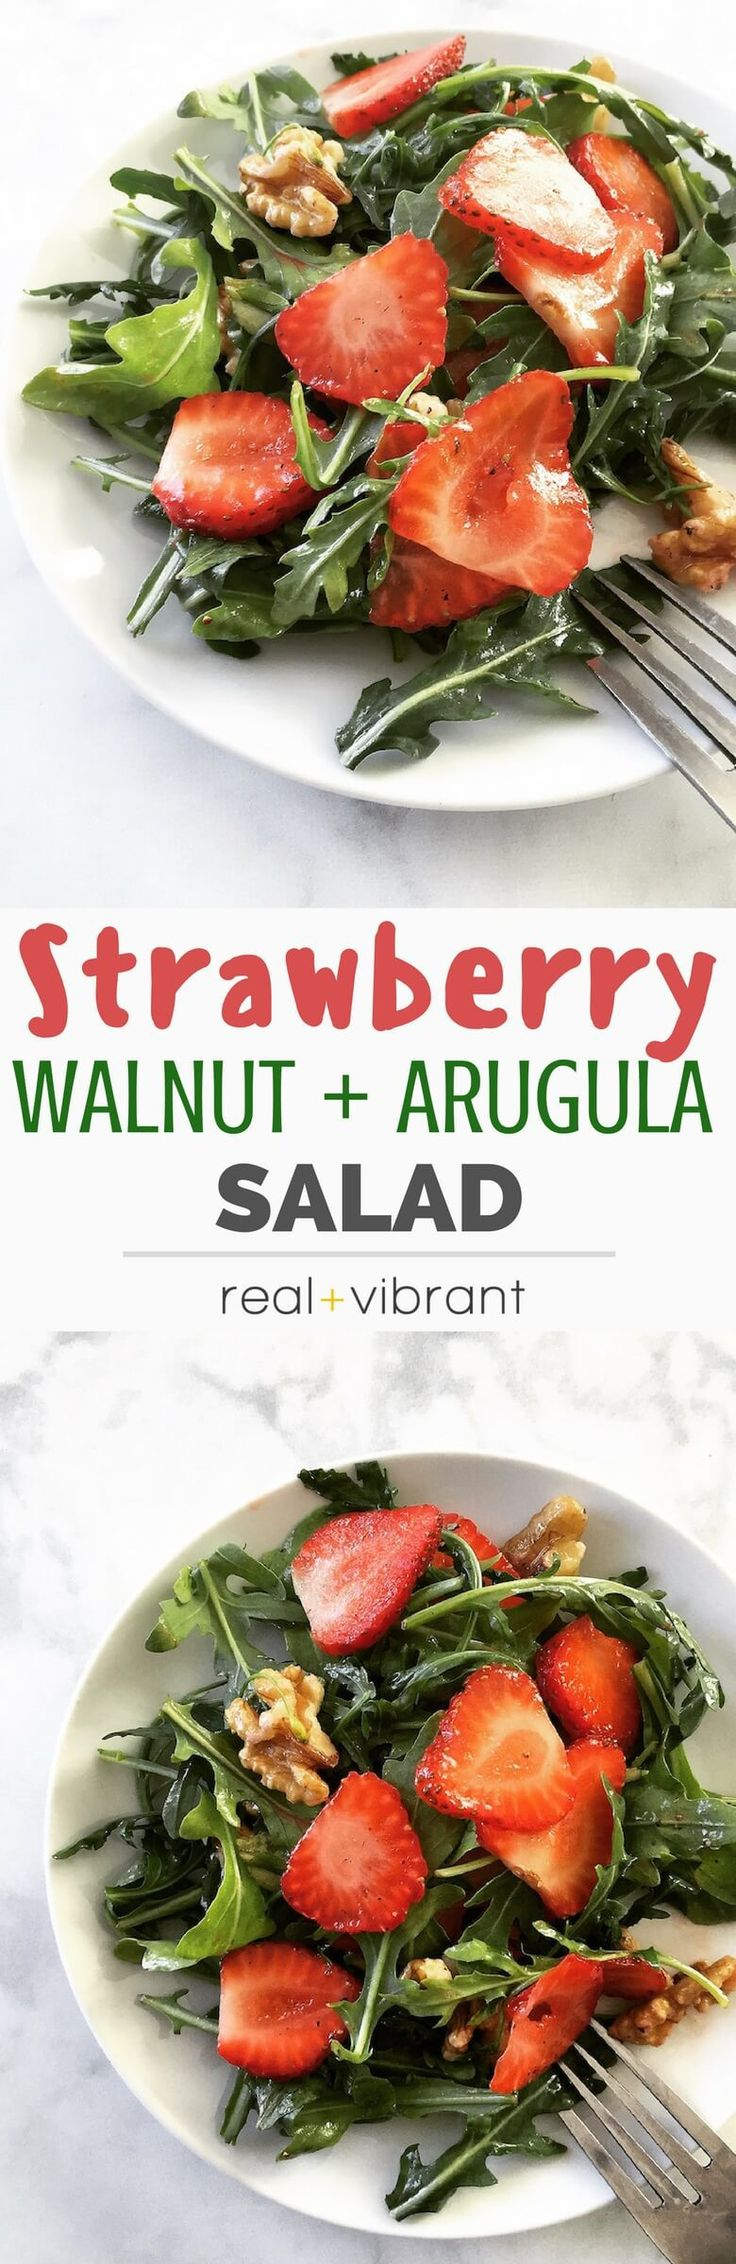 Strawberry Walnut Arugula Salad - This quick and easy salad healthy, delicious, and packed with fresh ingredients to delight your tastebuds!   realandvibrant.com